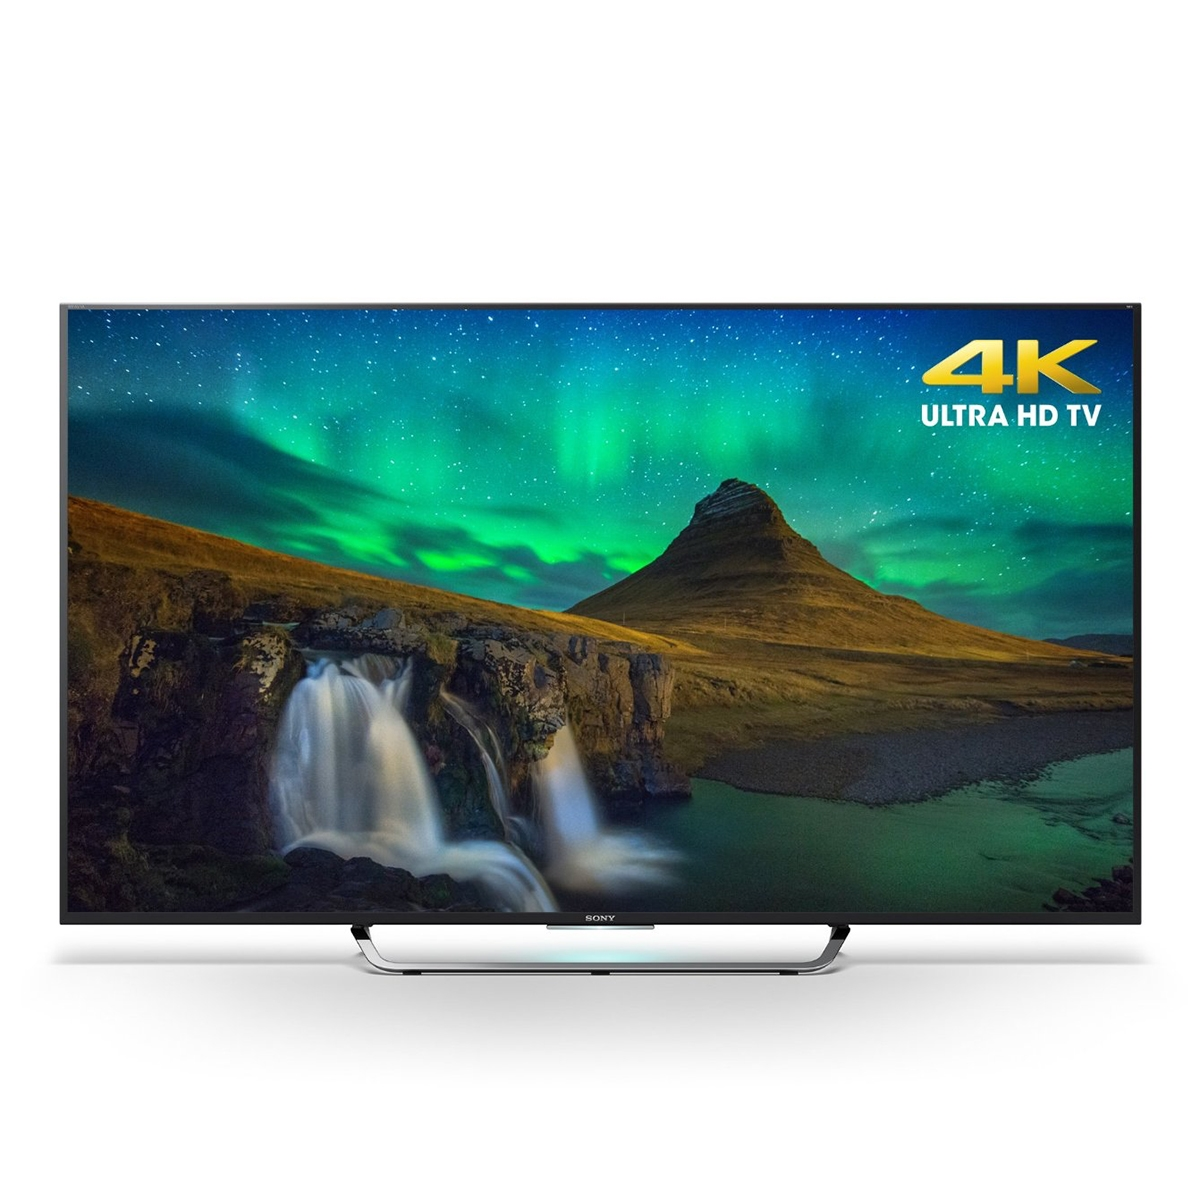 SONY 55INCH CLASS UHD 4K LED SMART HDTV - XBR55X850C - RESIDENTIAL USA VERSION -SONY ORIGINAL PANEL - FULL ONE YEAR MANUFACTURERS WARRANTY!